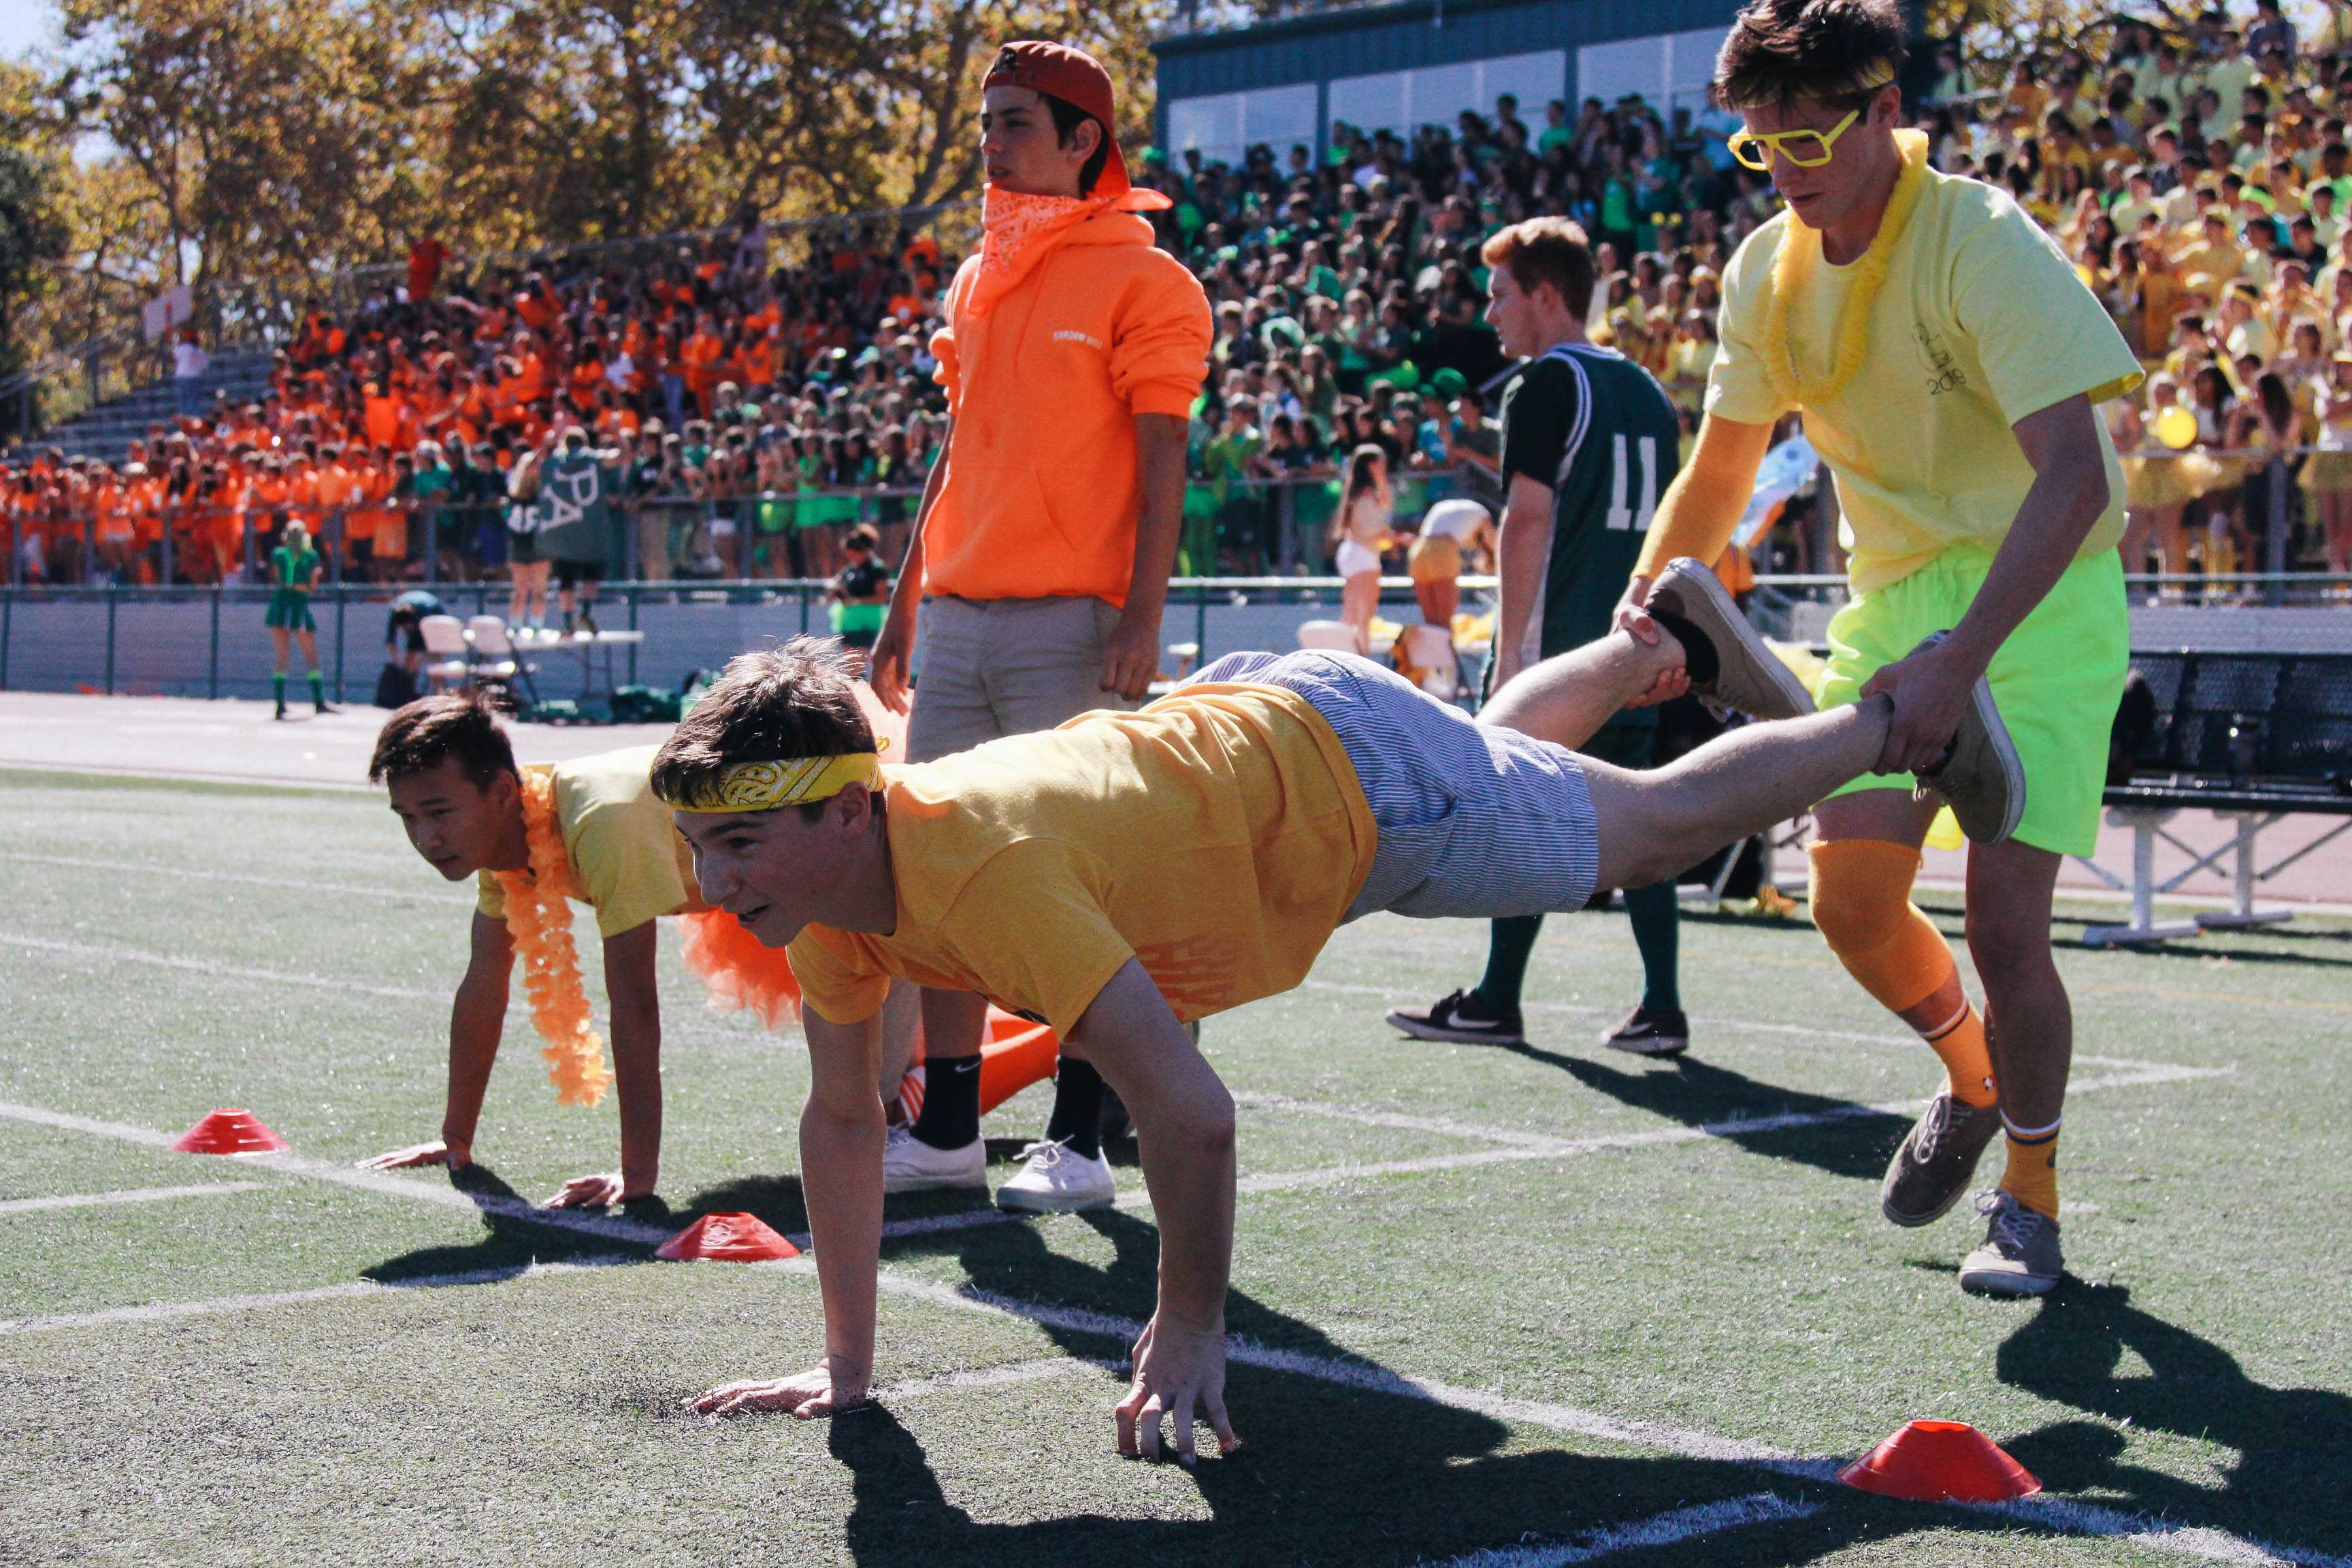 Junior Cole Sotnick looks ready to run the first leg of the relay. Photo: Angelina Wang